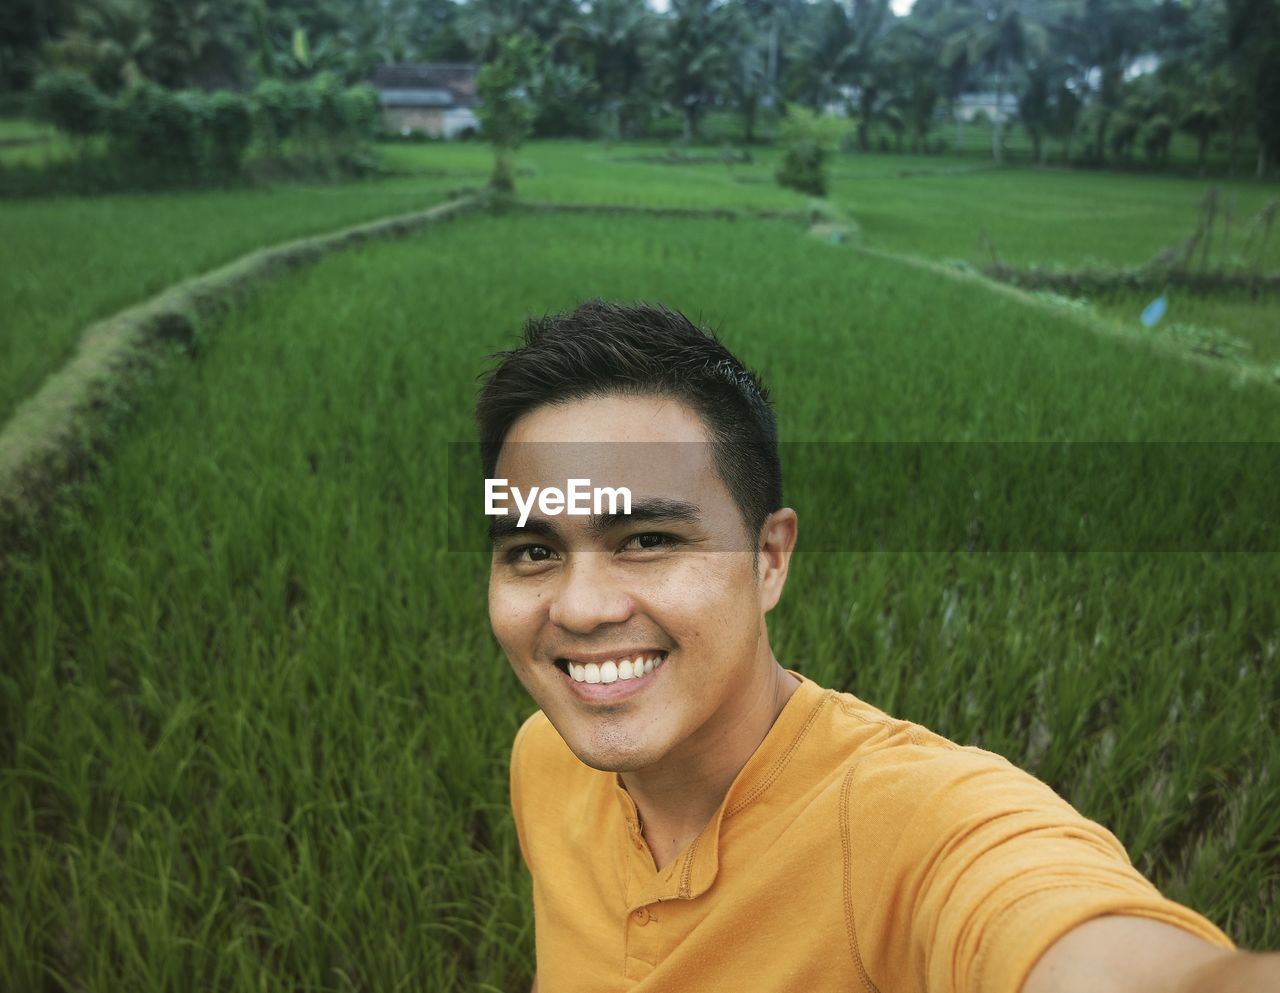 Portrait Of Smiling Young Man In Field